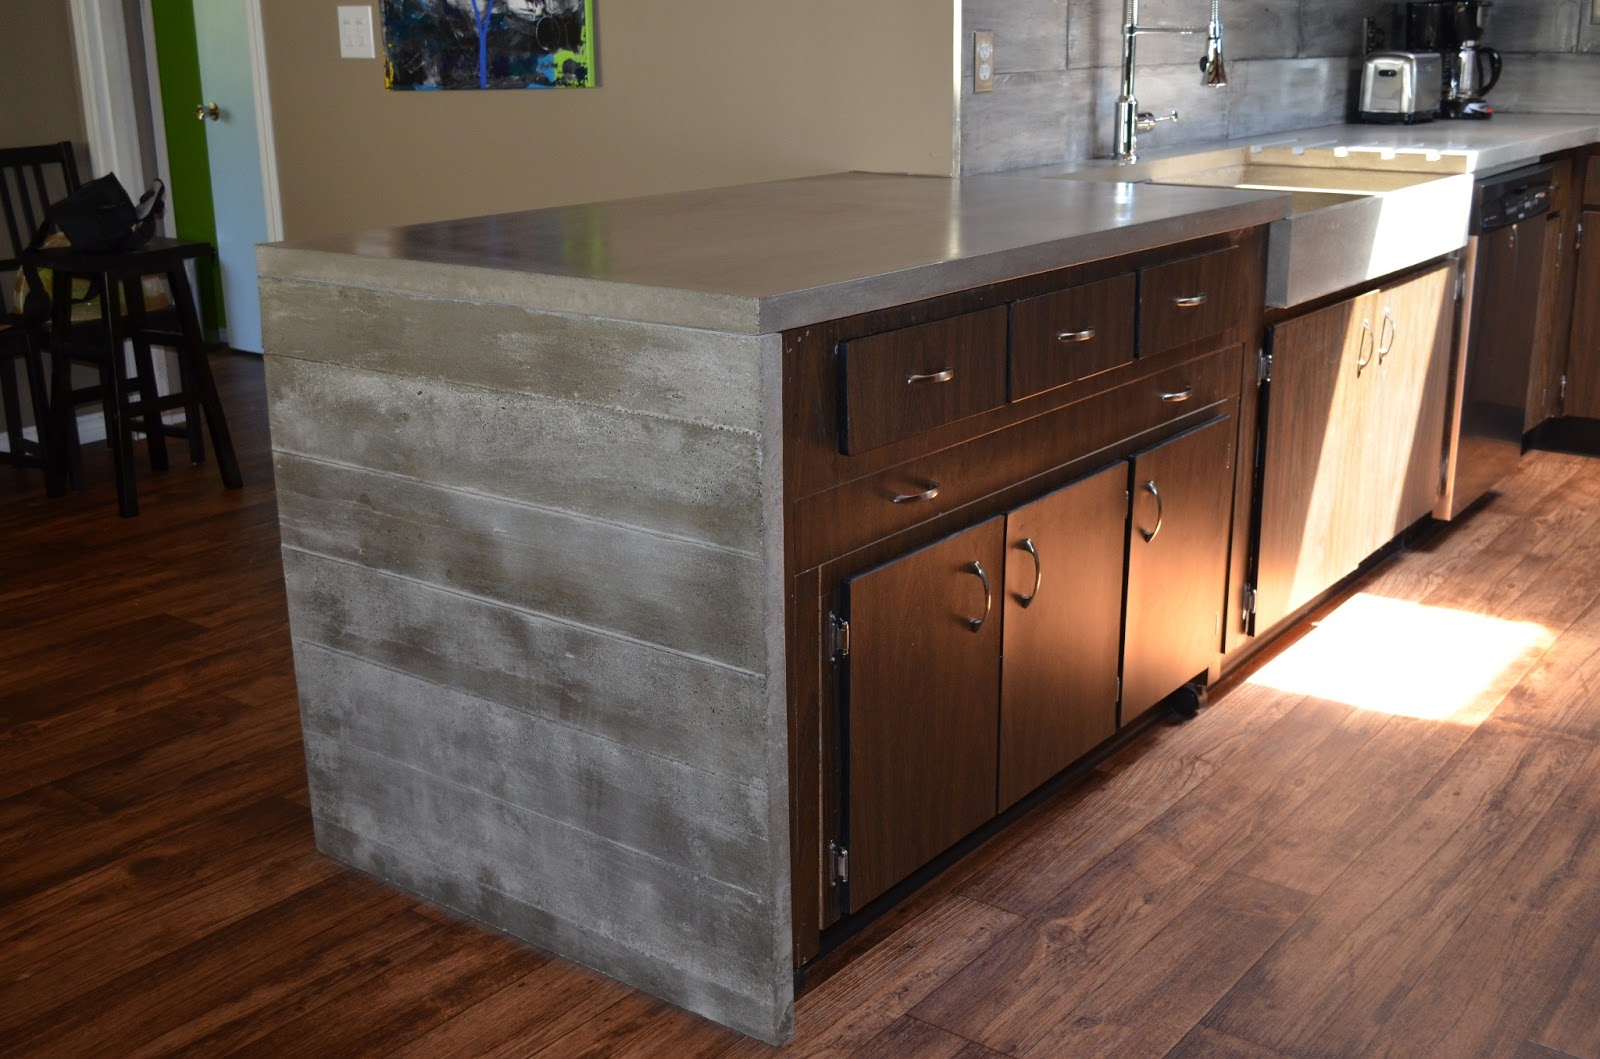 Modern Contemporary Concrete Kitchen Waterfall Countertop